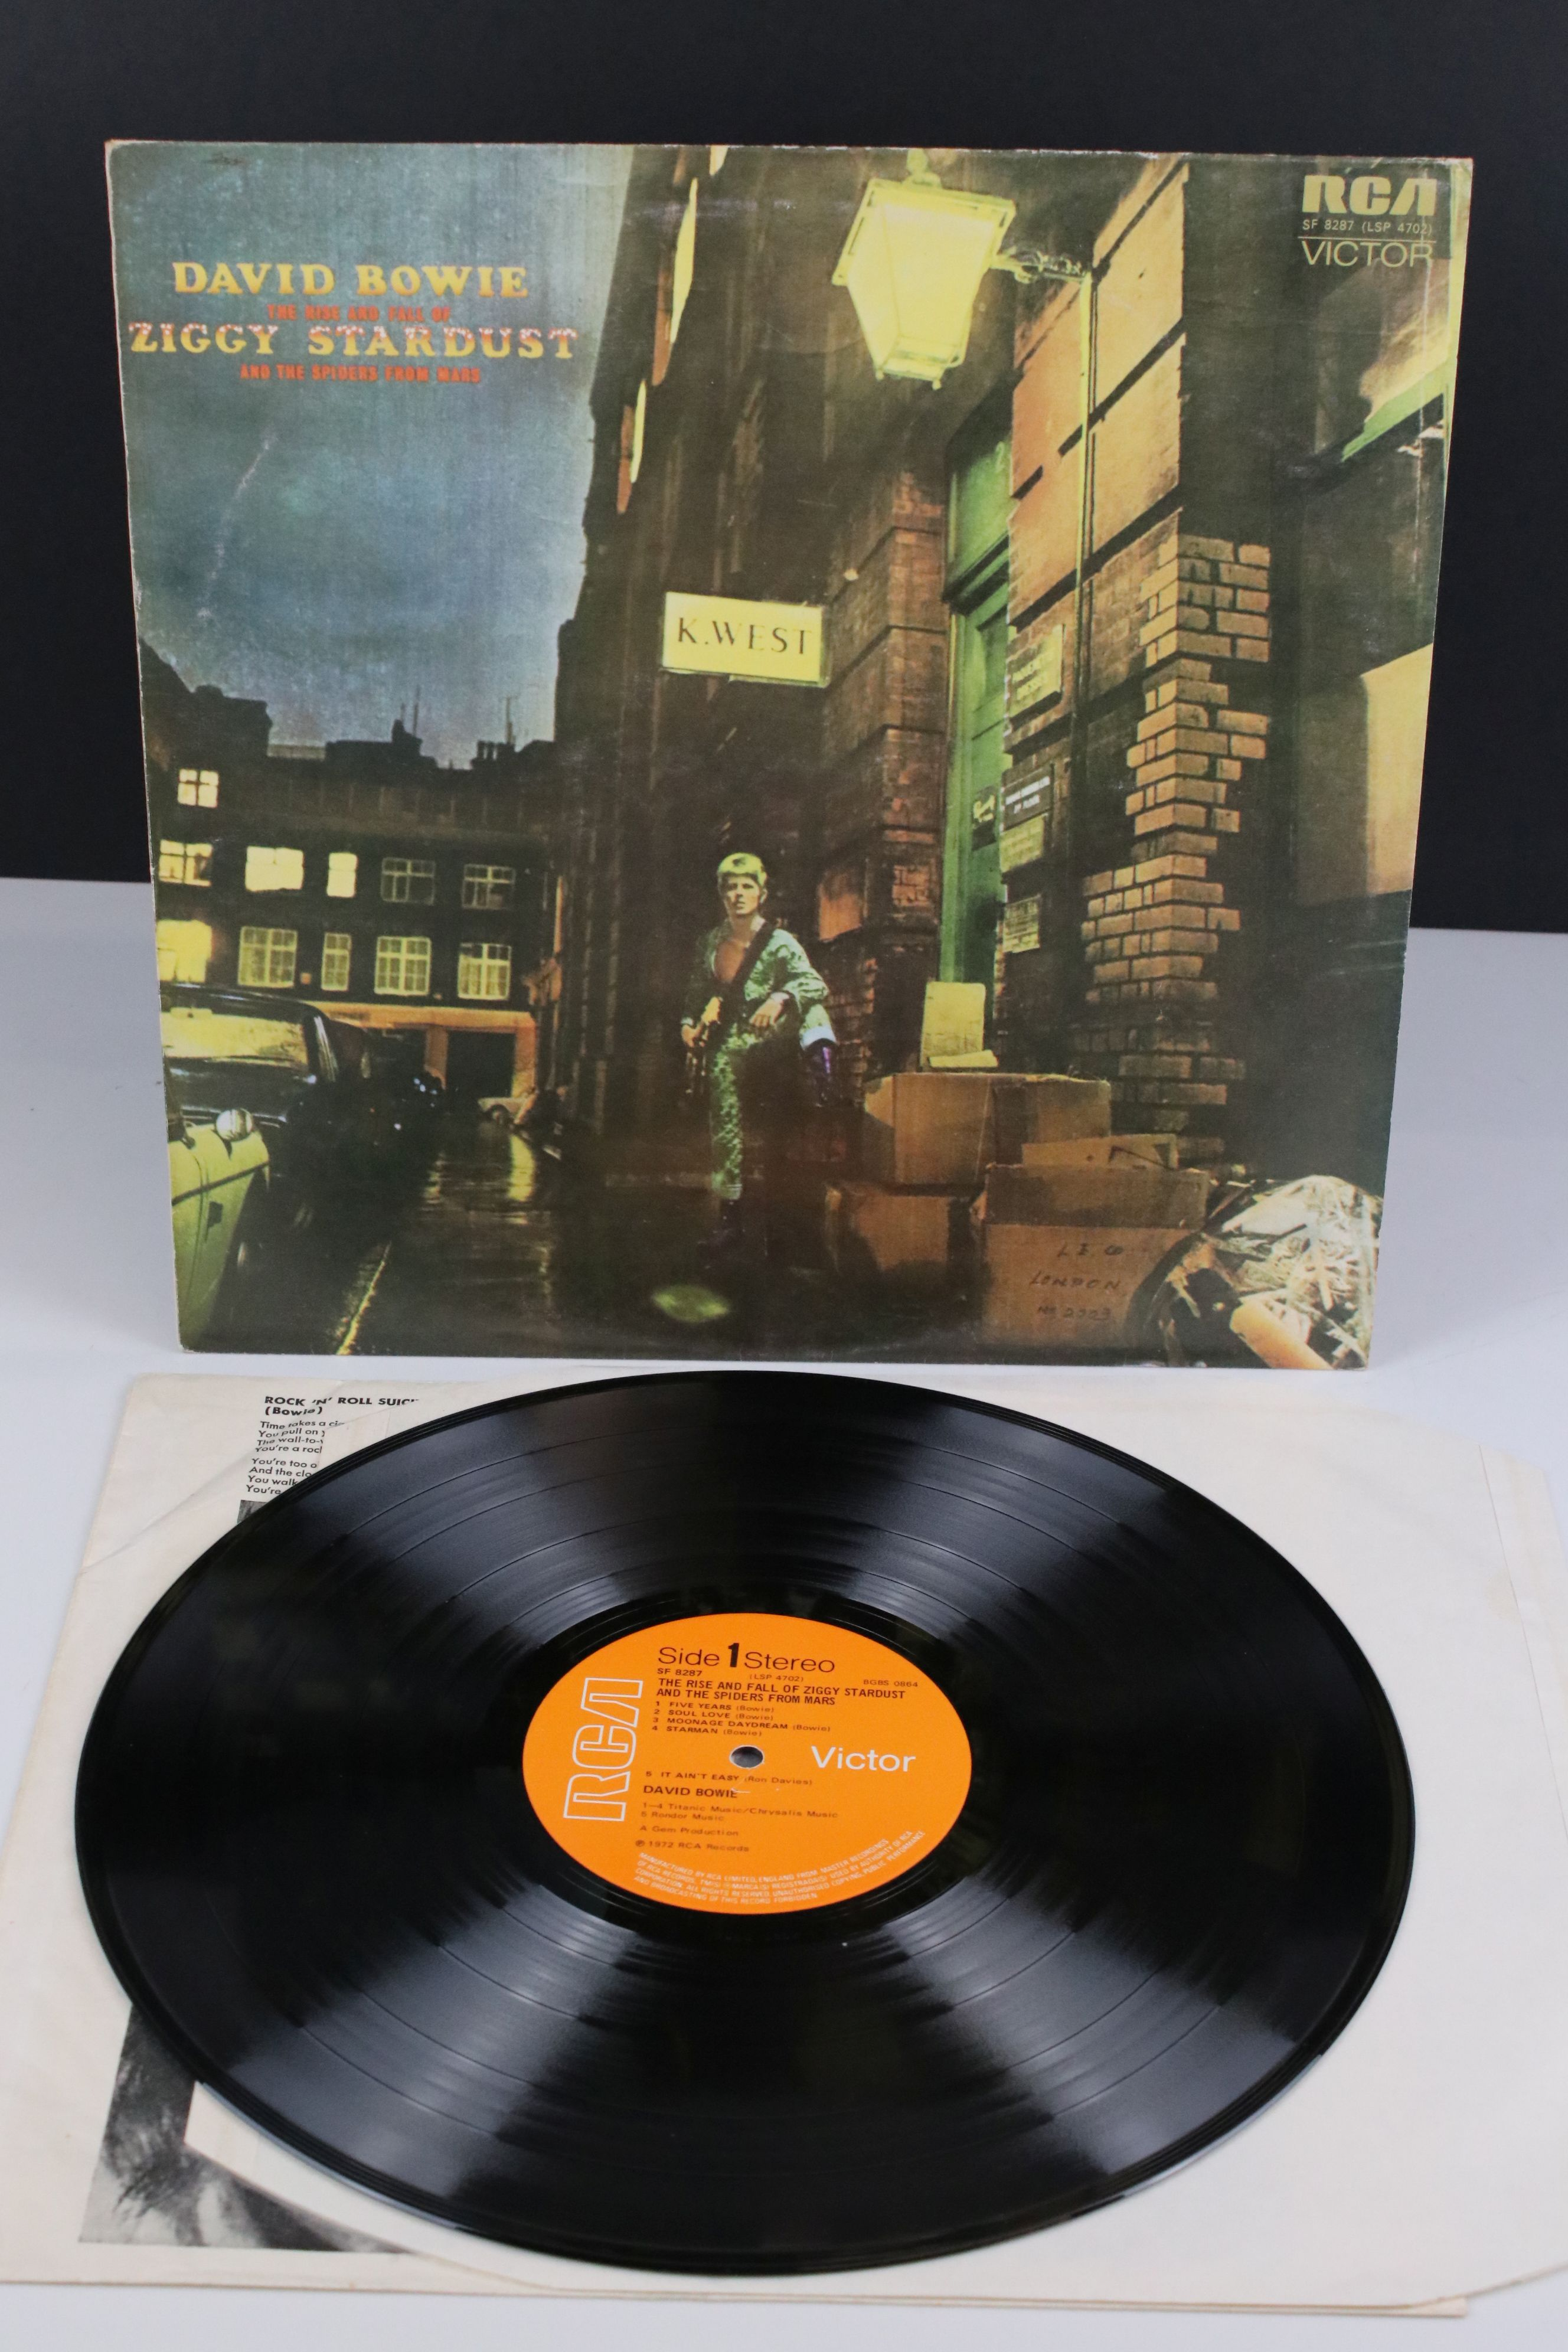 Vinyl - David Bowie The Rise and Fall of Ziggy Stardust LP on RCA8287, shiny orange RCA label,